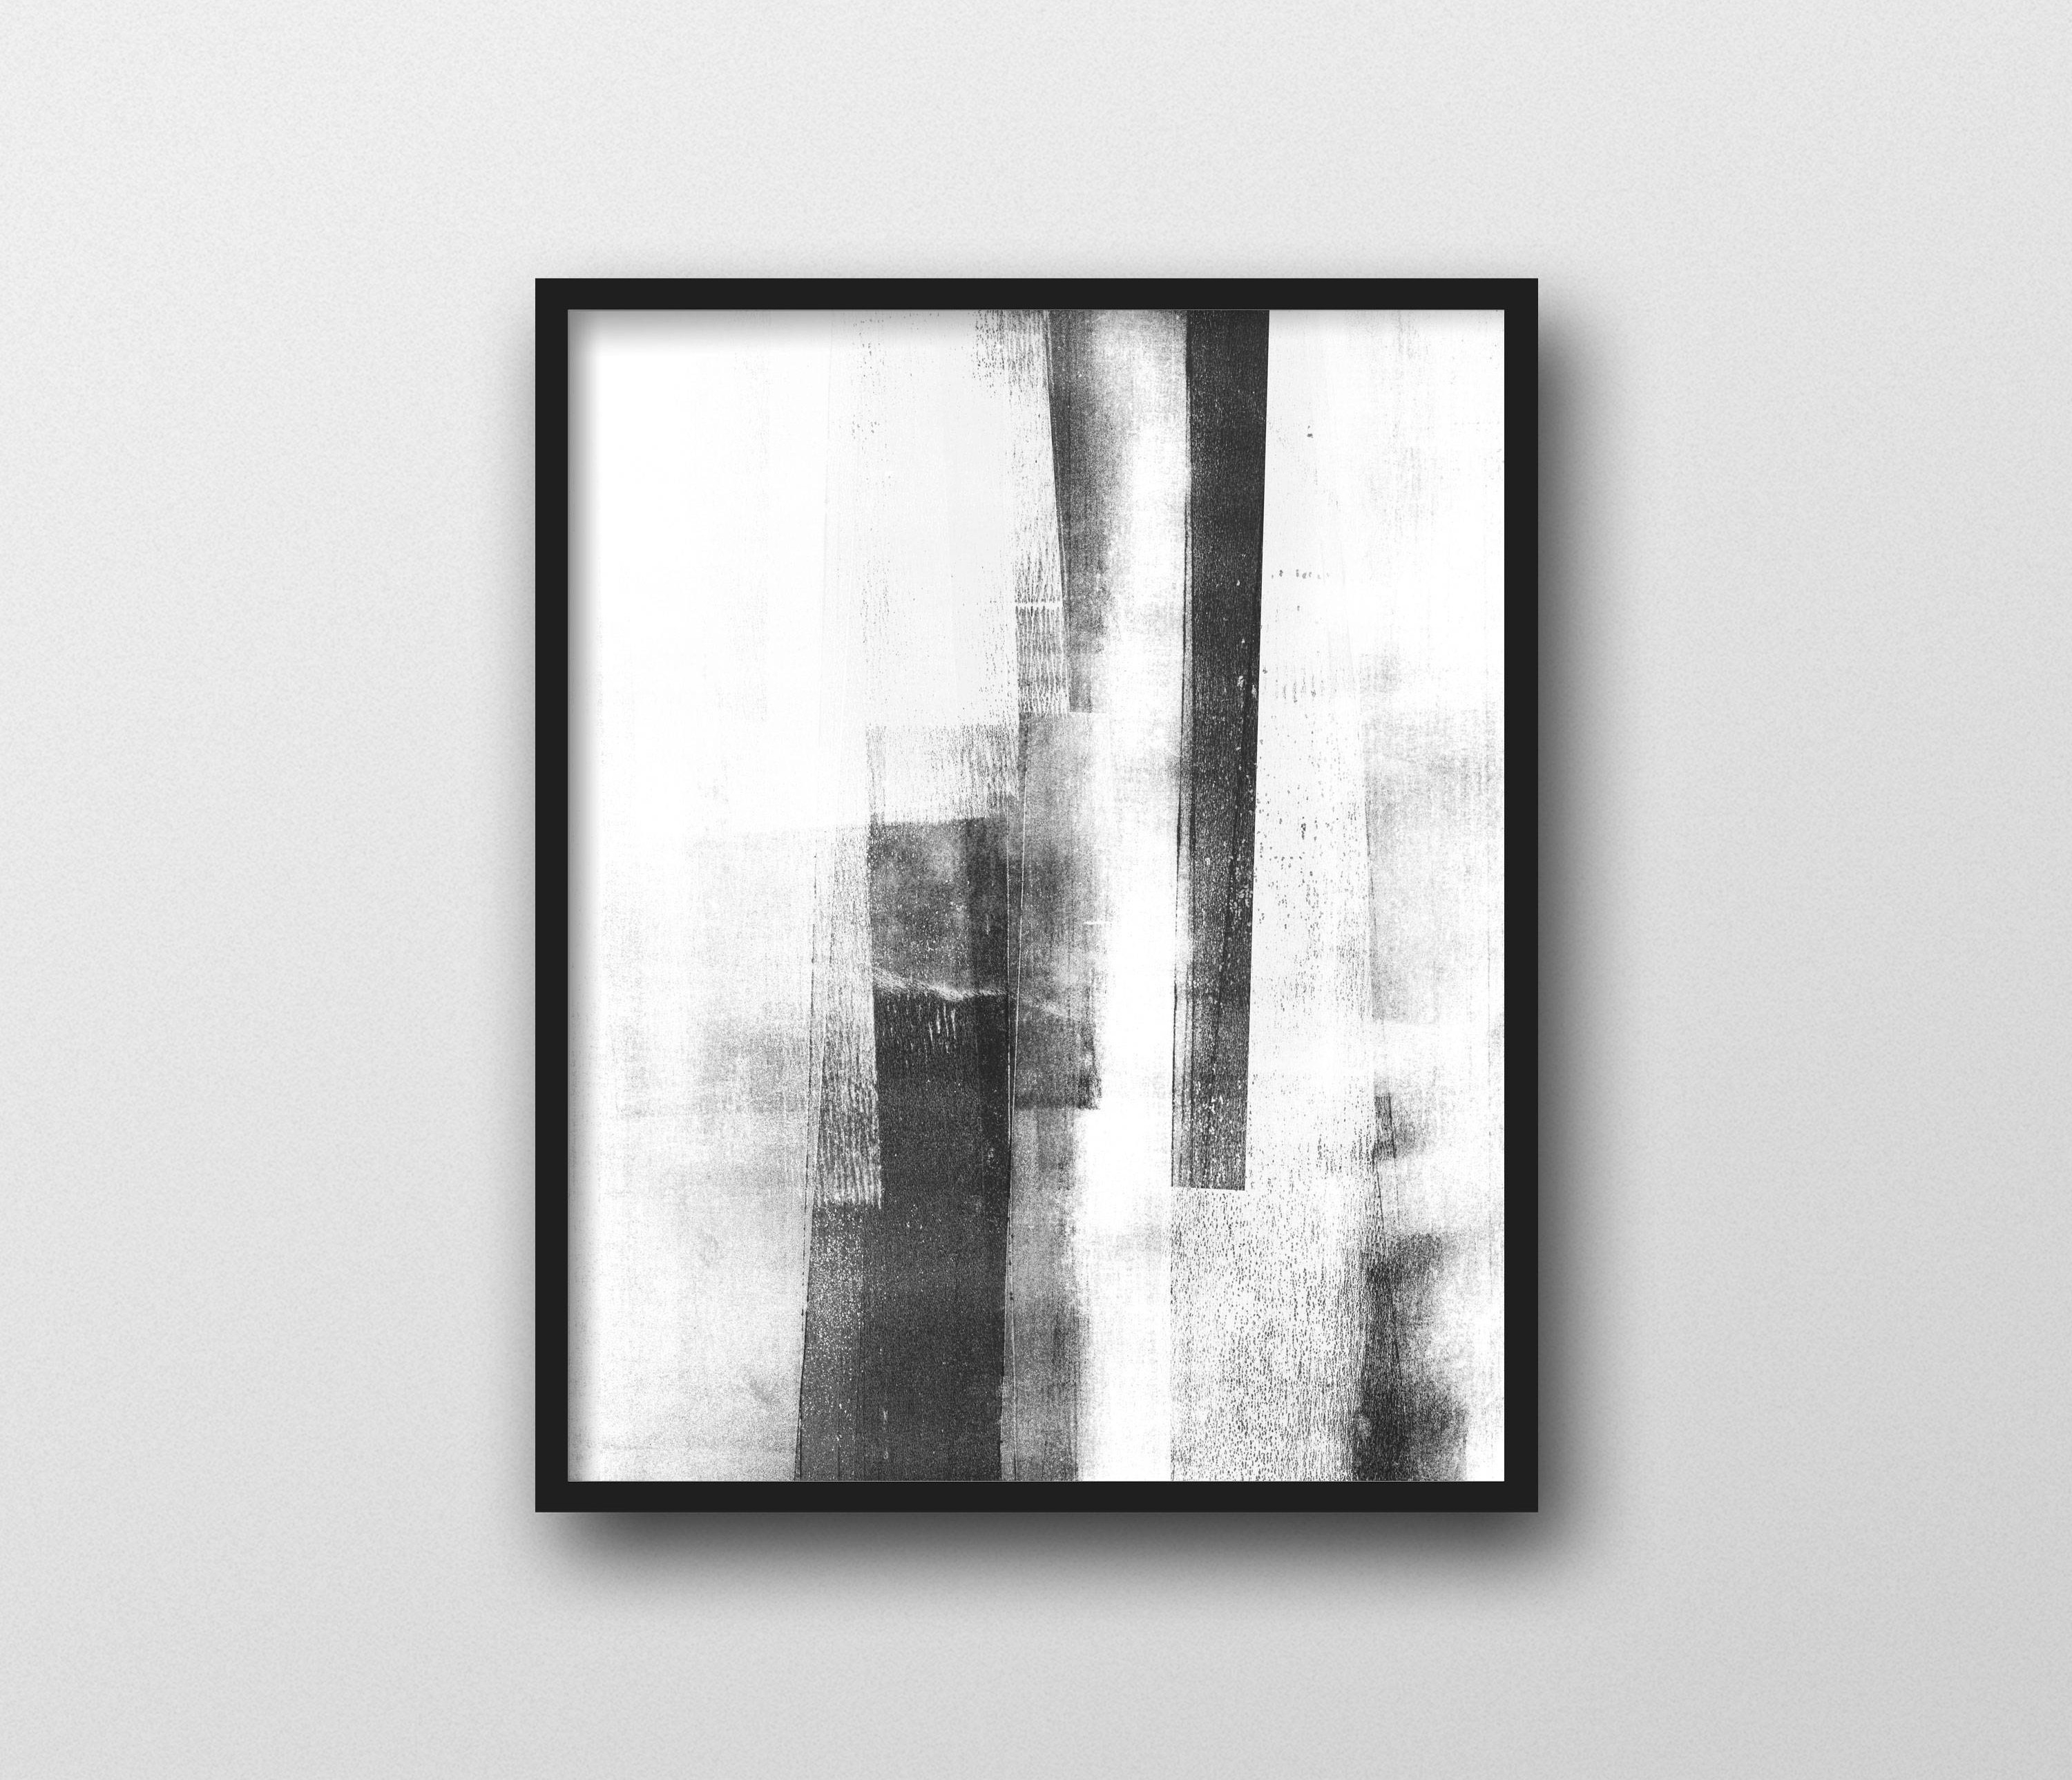 Black & White Wall Art Prints, Scandinavian Art, Minimalist Poster Intended For 2018 Abstract Wall Art Posters (View 3 of 20)